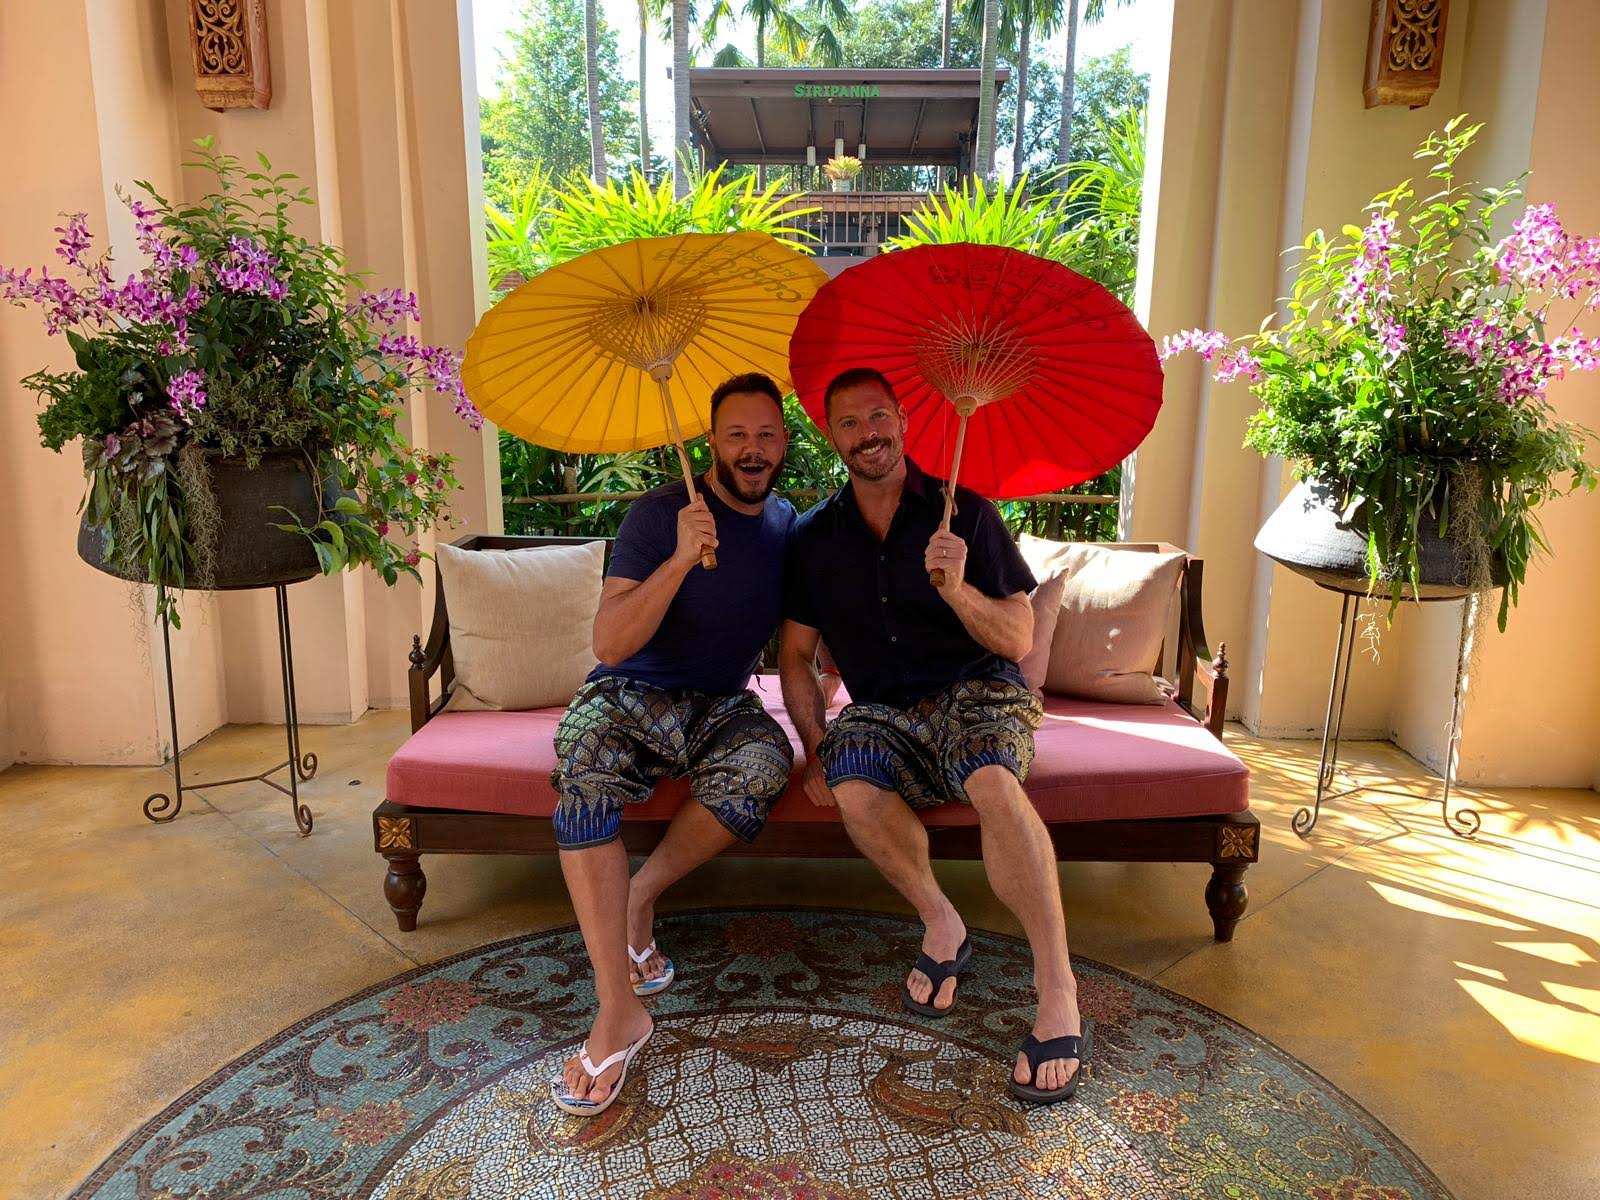 Two gay travellers in Thailand wearing traditional clothes and holding umbrellas.